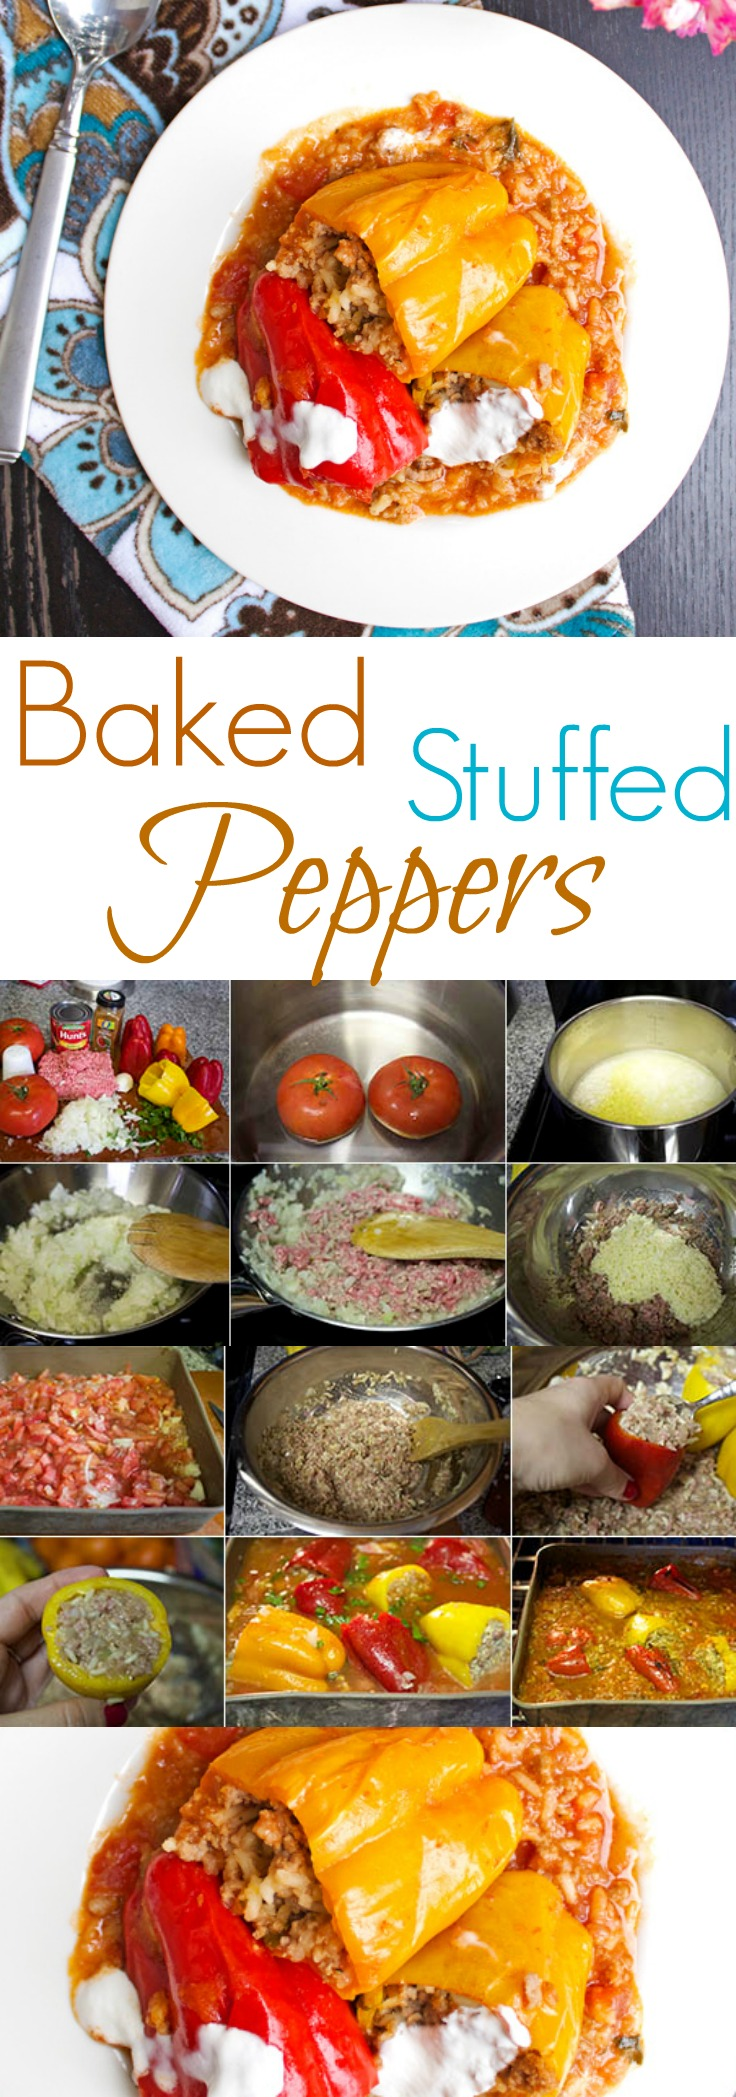 Simple stuffed peppers. Delicious, hearty, comfort meal. A perfect way to stay strong through the winter.